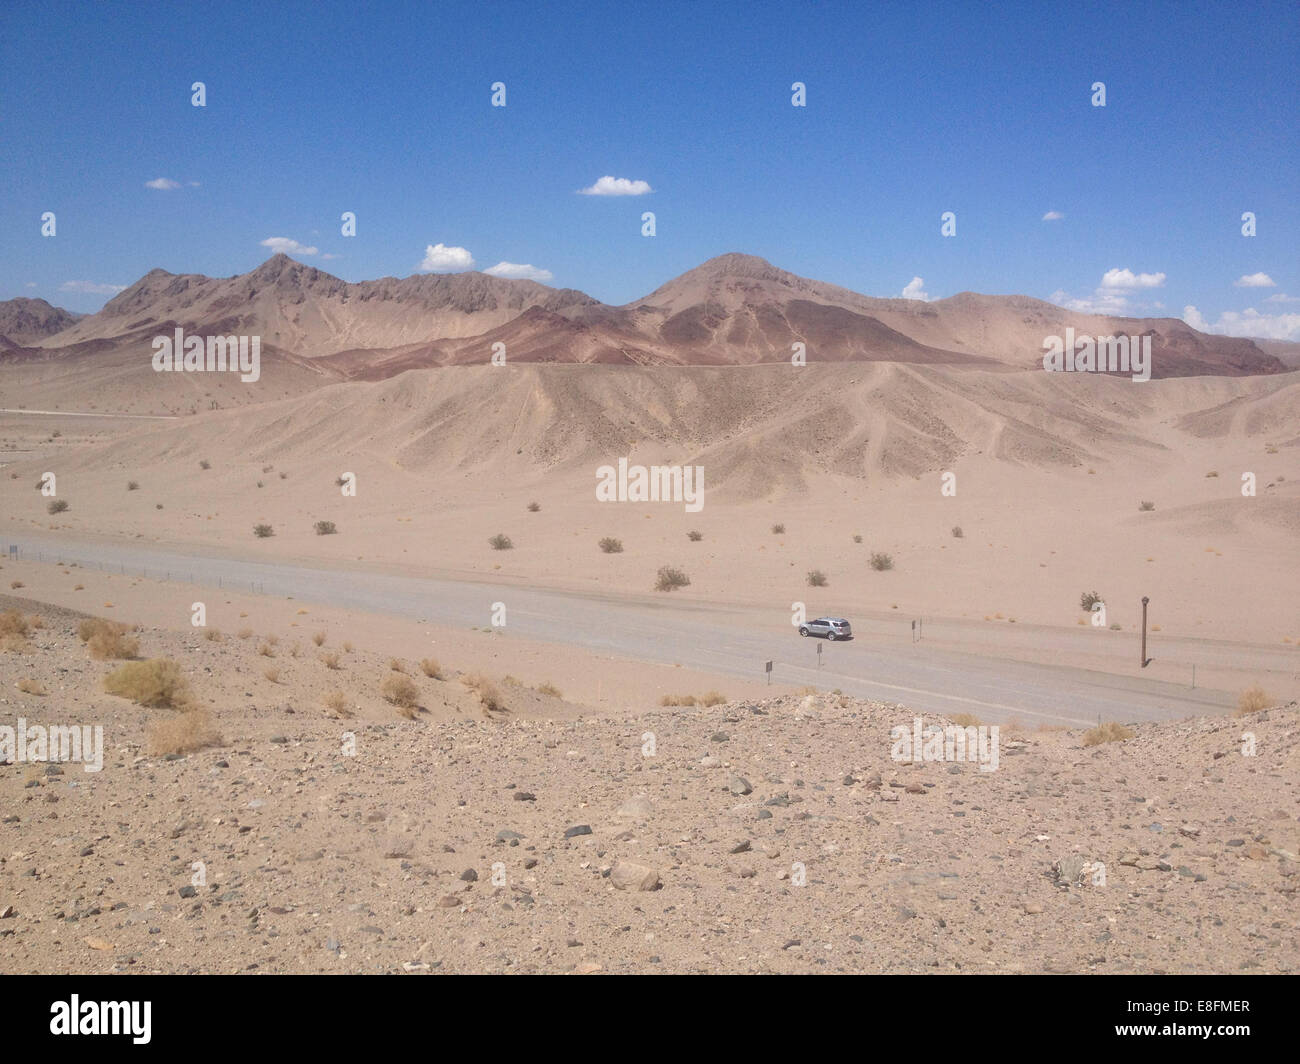 USA, Nevada, Car parked on empty desert road - Stock Image